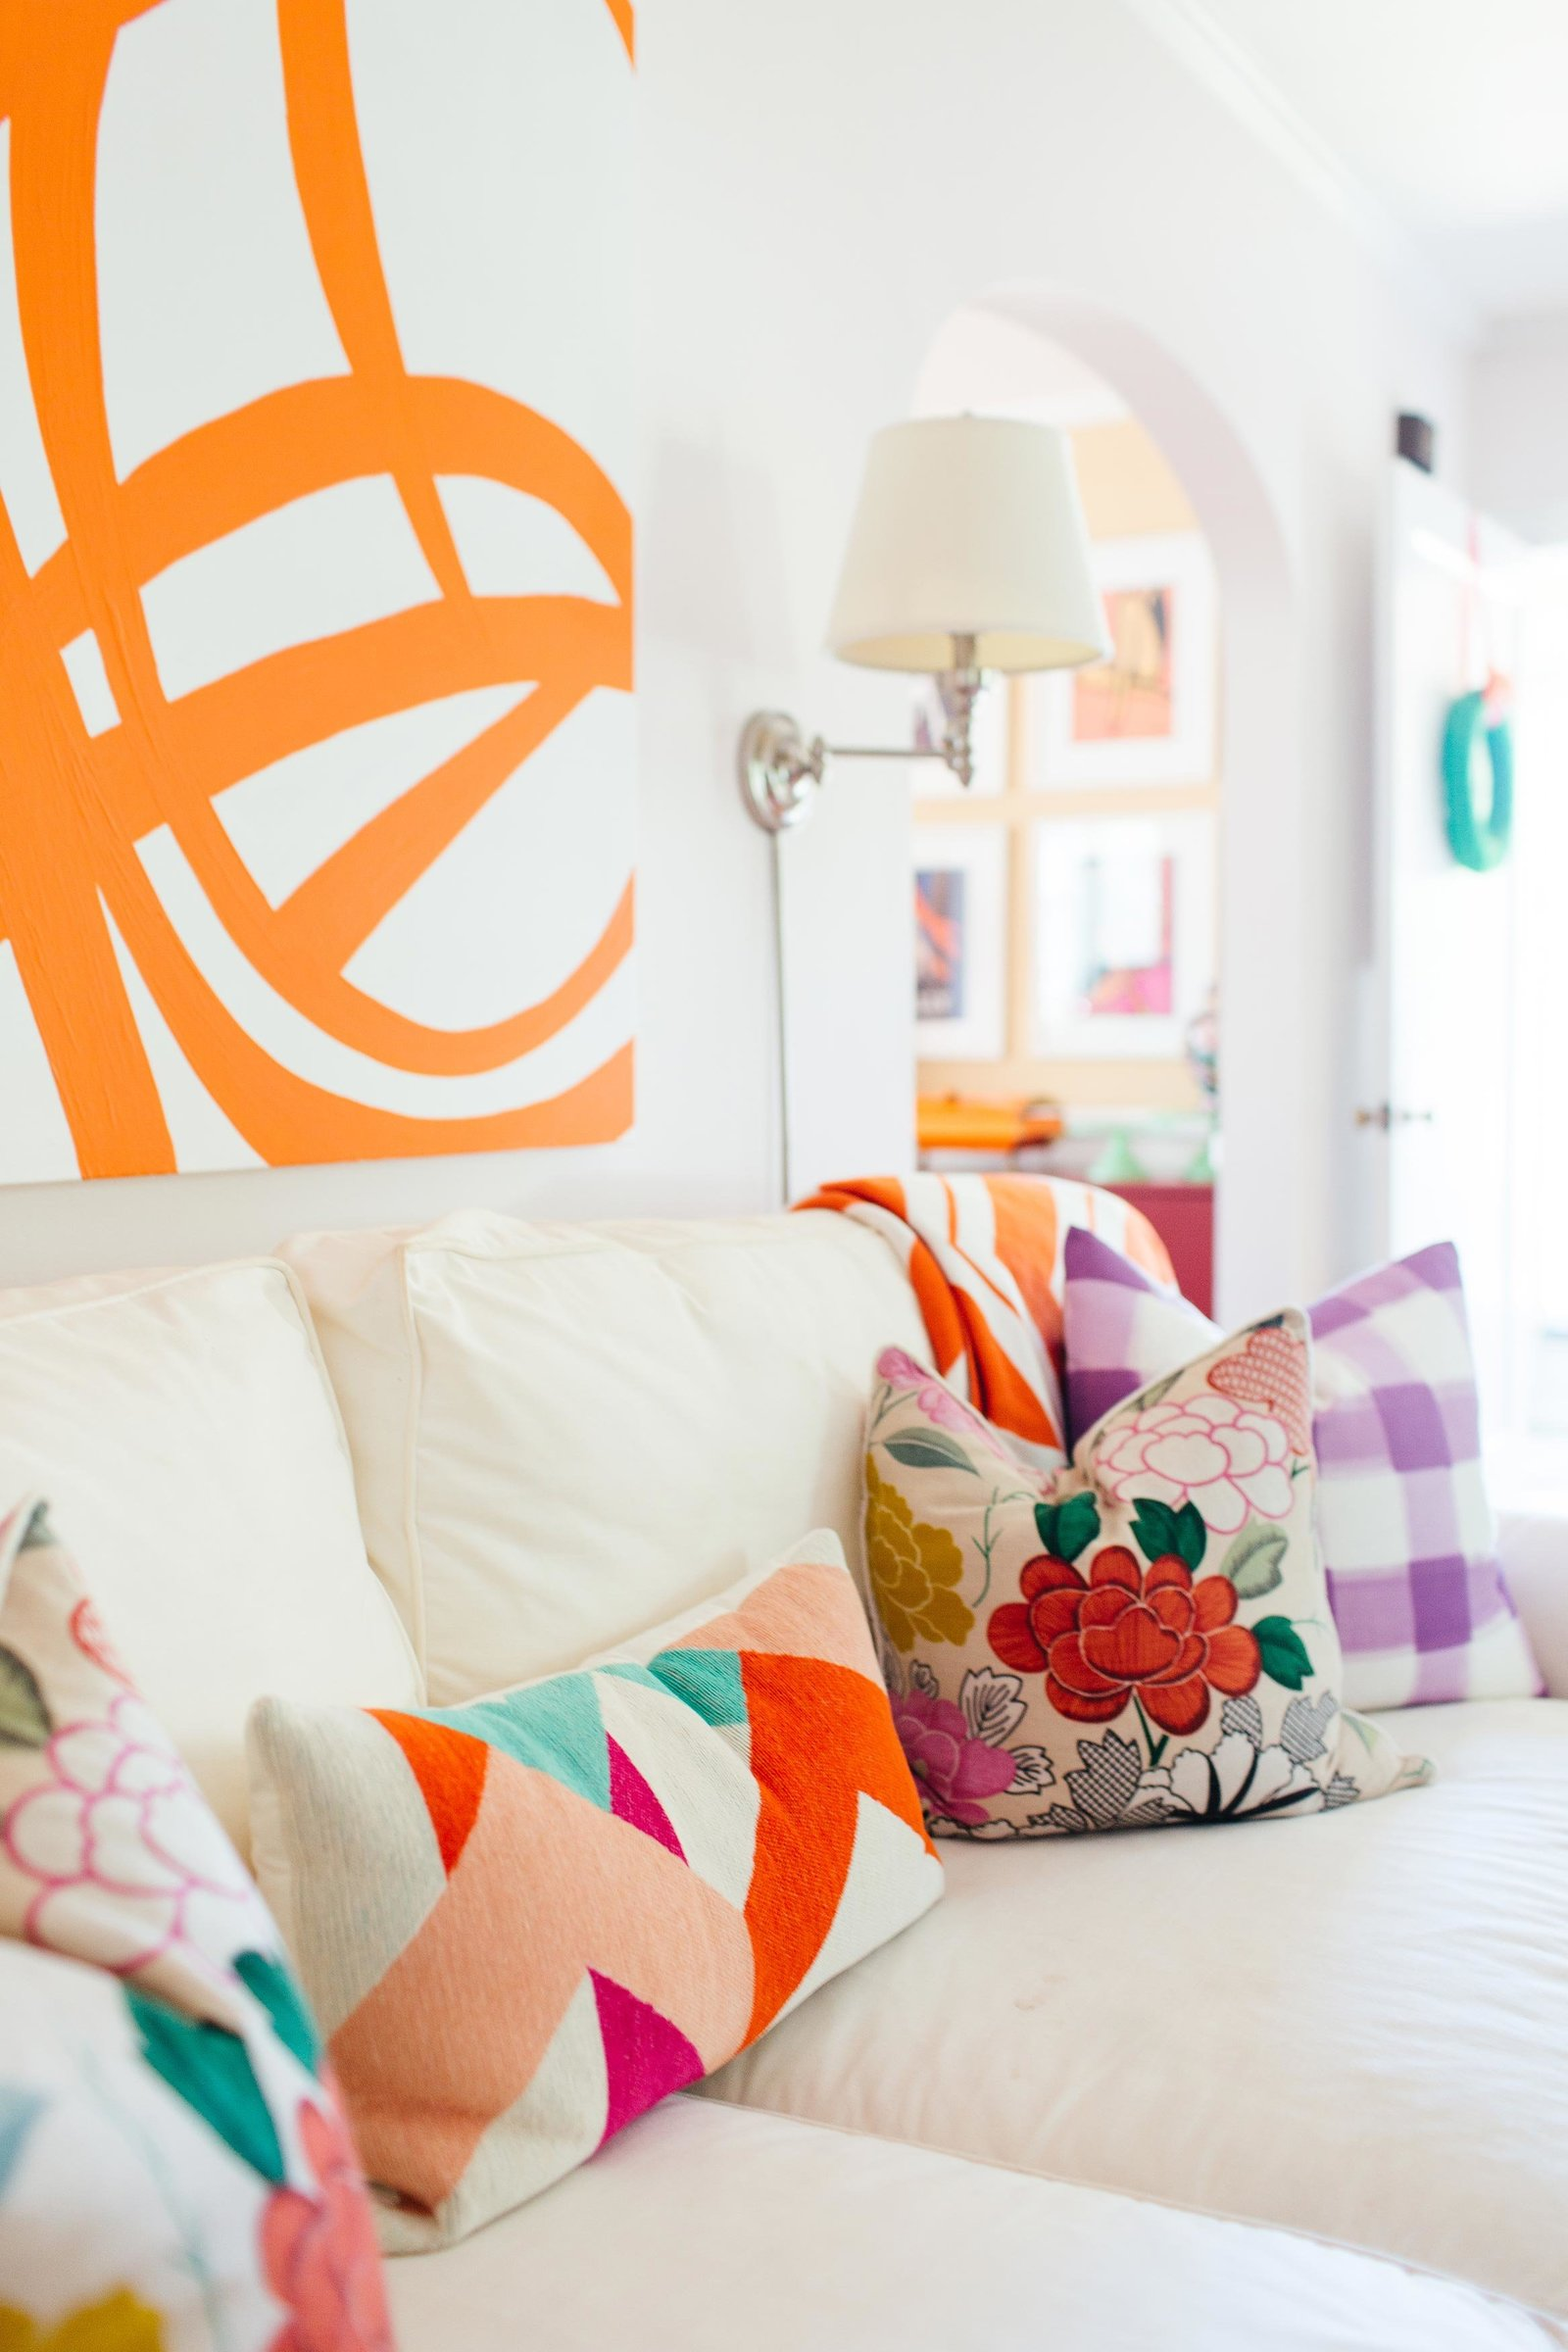 A living room with a large orange and white abstract painting and colorful throw pillows.